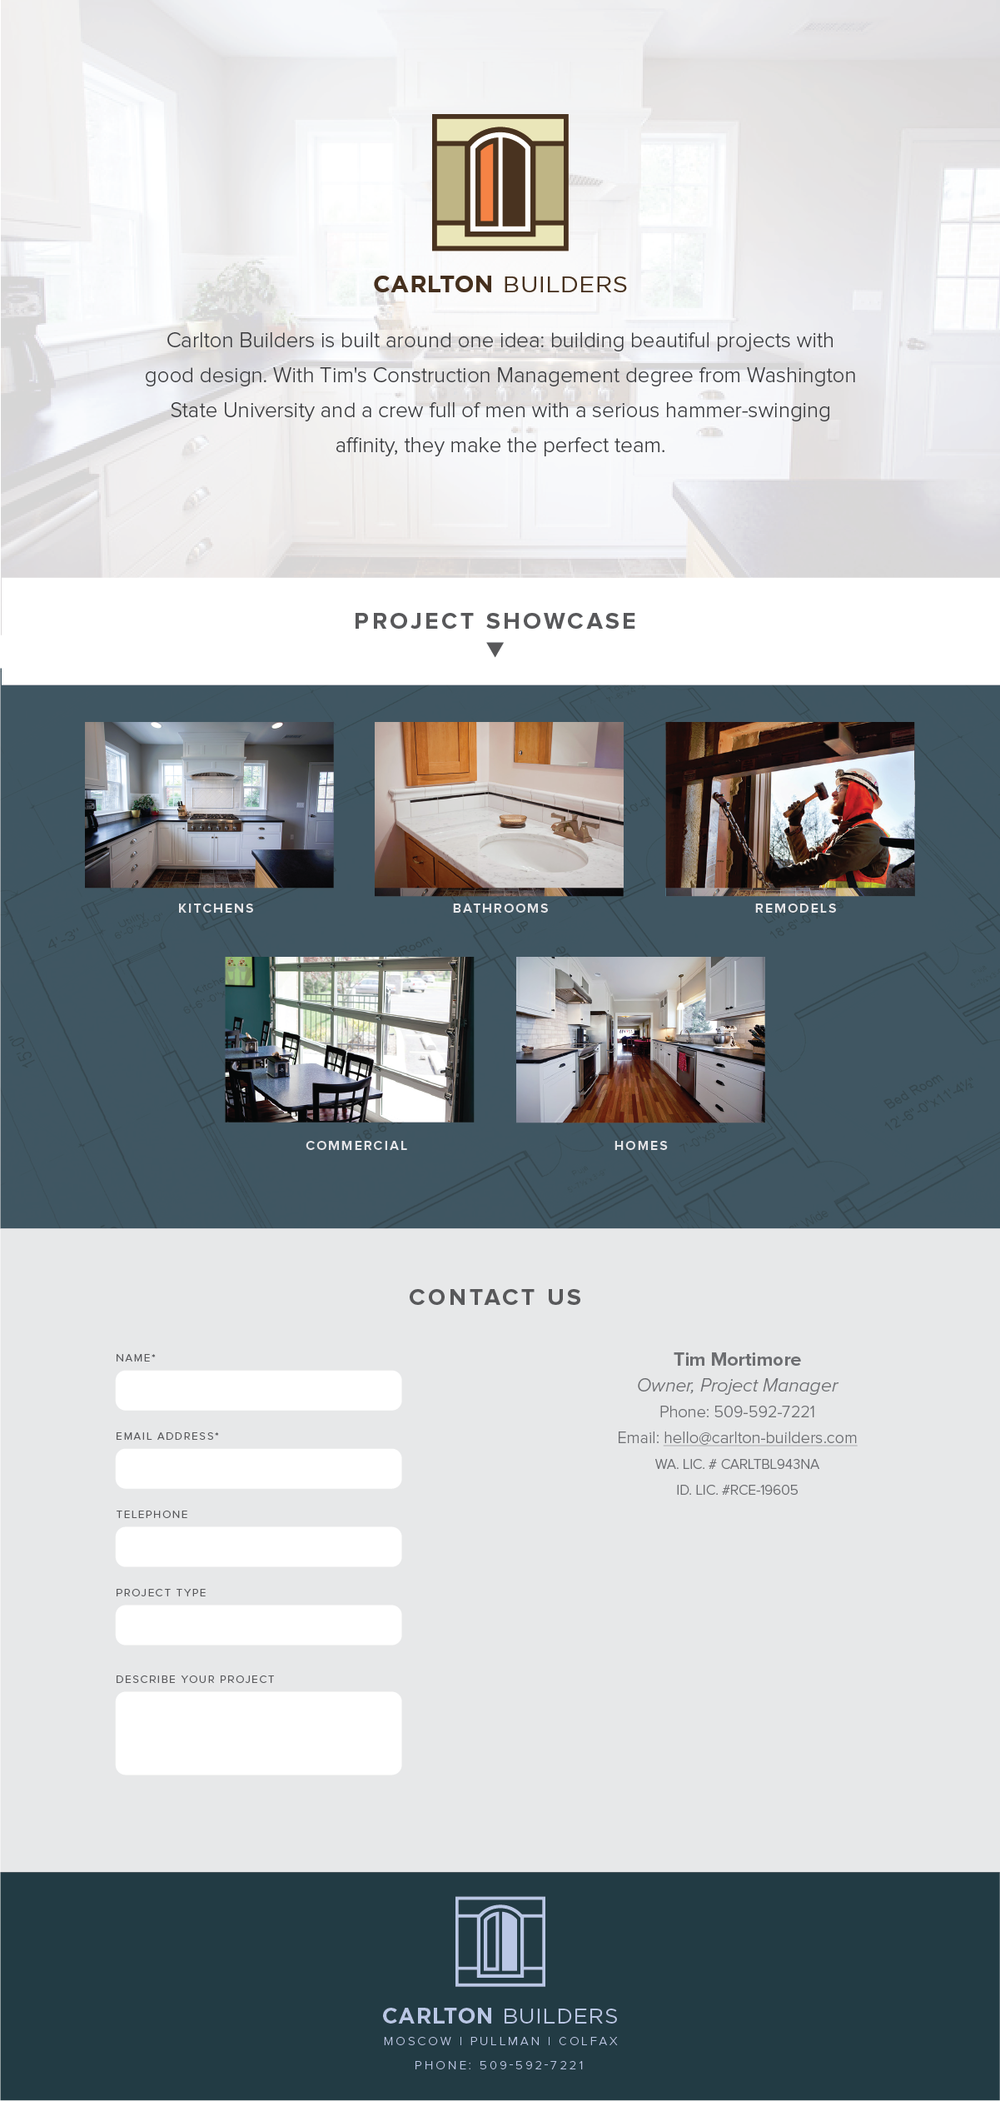 2014 - Carlton Builders  - Initally mocked up and built in Squarespace, replaced with wordpress site by another developer.